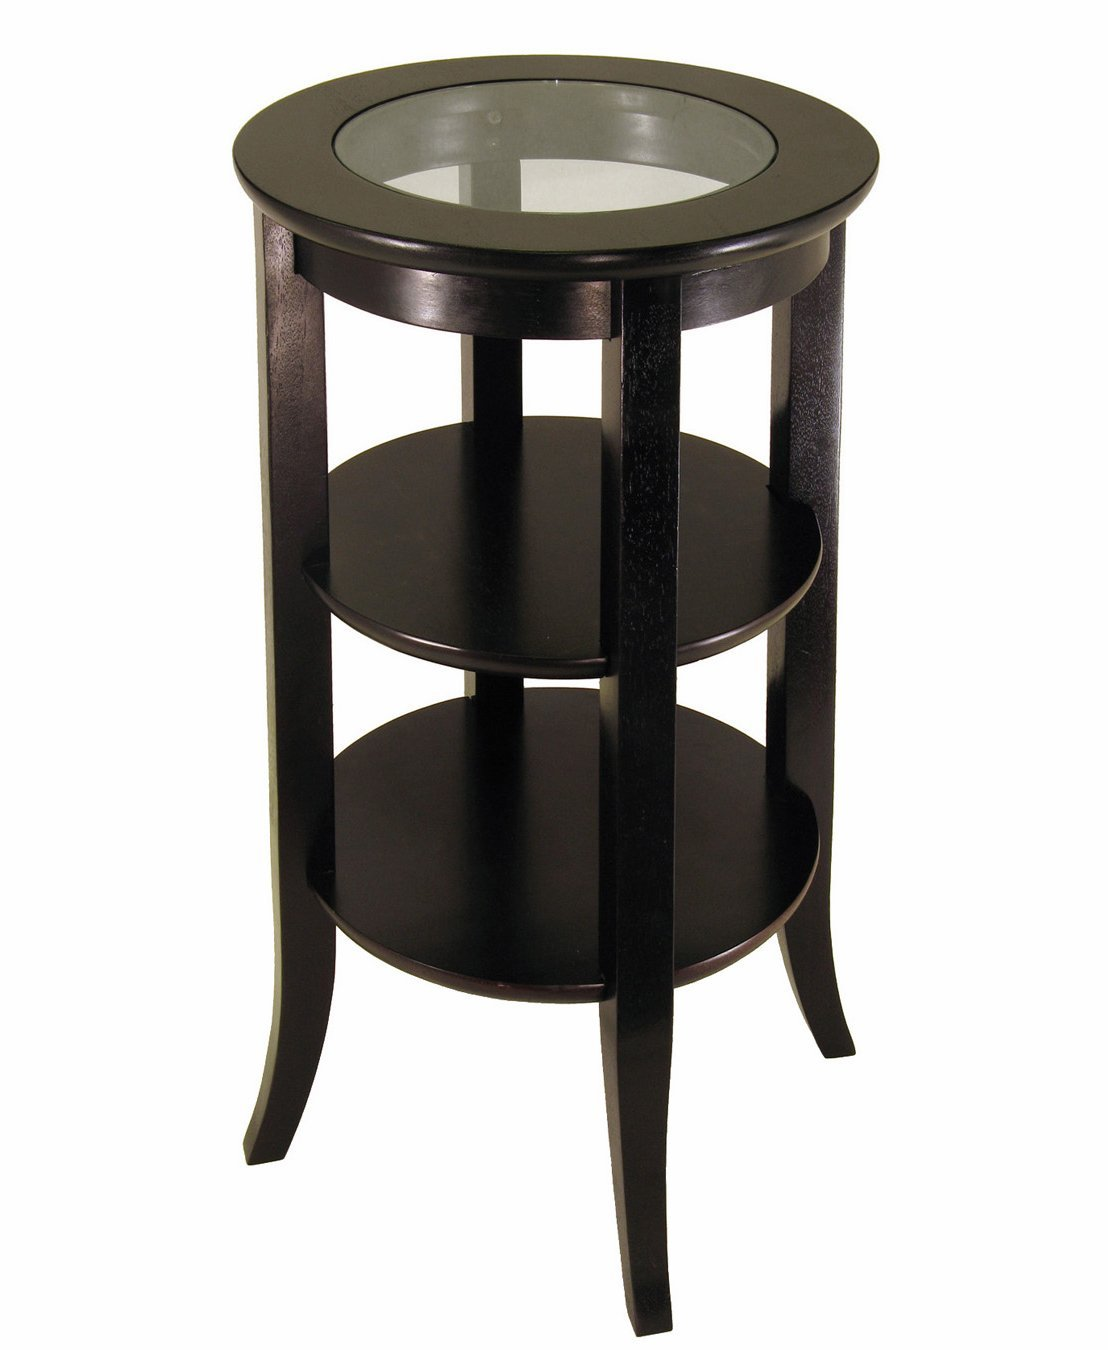 apartments drum coffee table designs round wood furniture design ideas end solid dining bench seat small mosaic accent tables thomasville bedroom set black metal inch tall oak